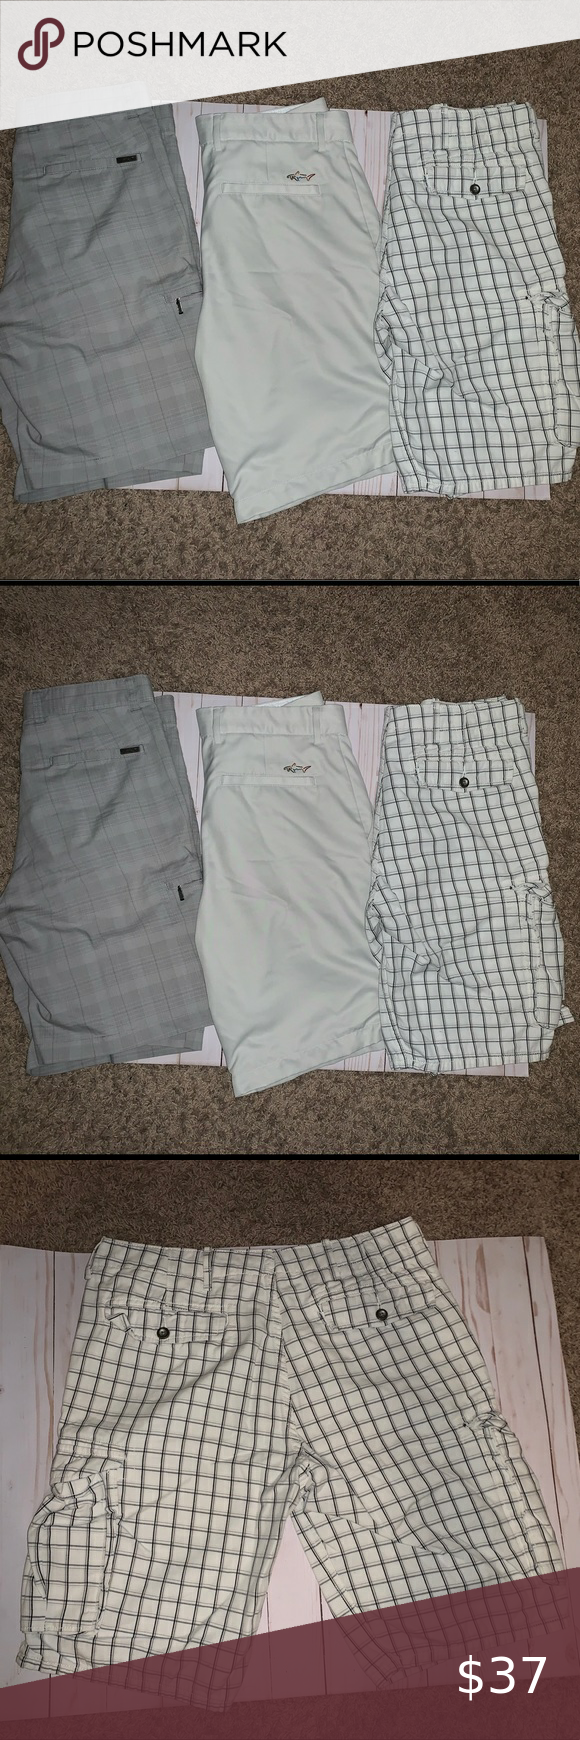 3 Pairs Of Men S Shorts Size 32 Greg Norman Levi S In 2020 Levi S Levi Greg Norman